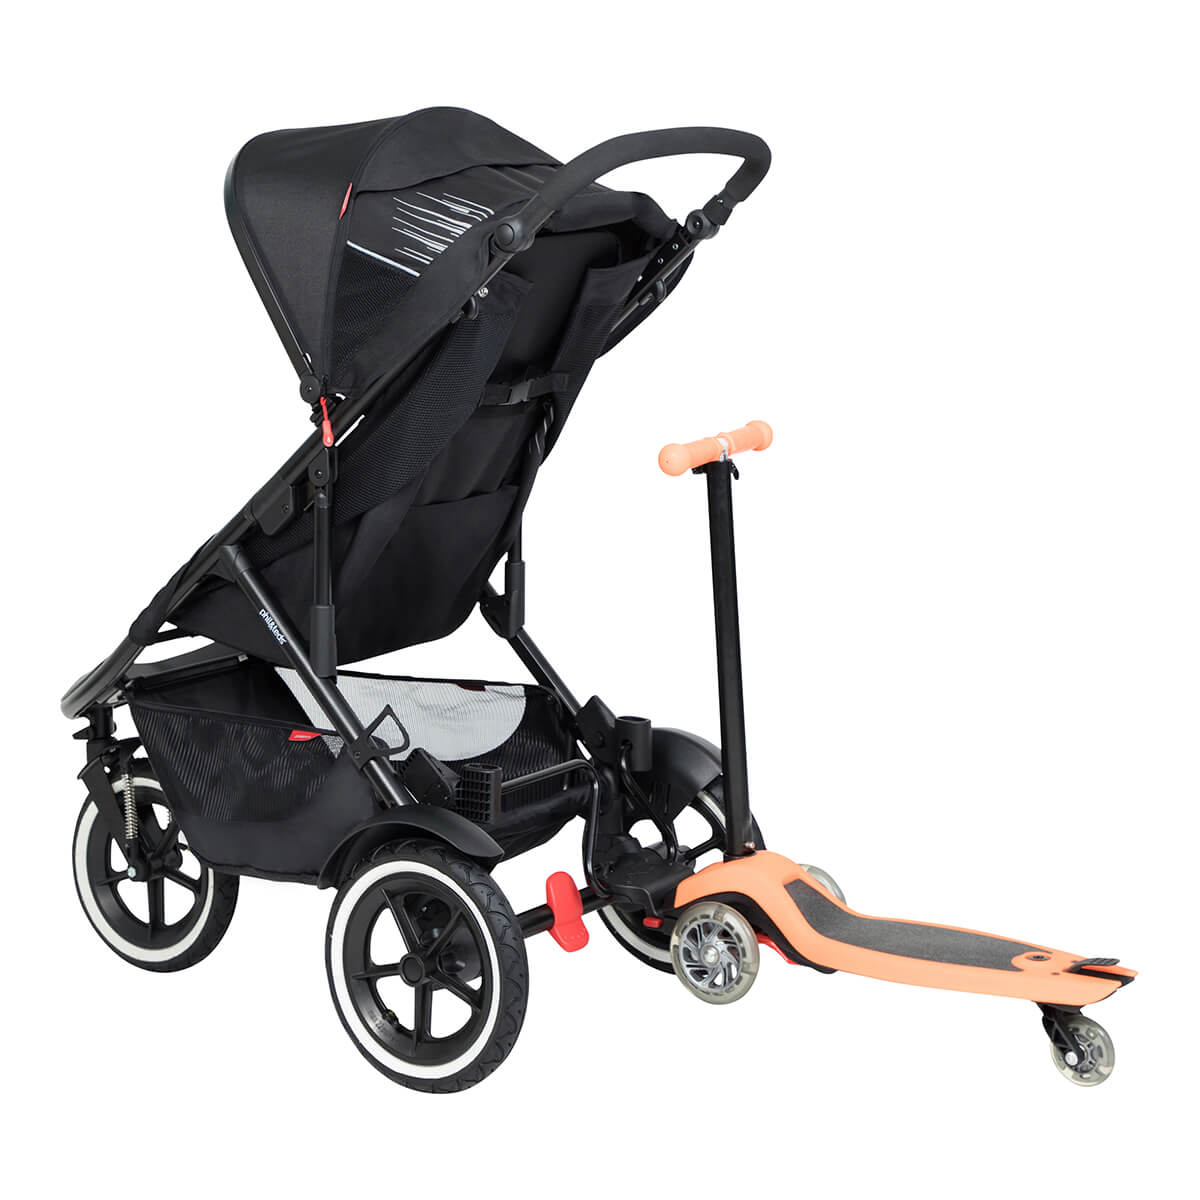 https://cdn.accentuate.io/4363395924021/19118870757429/philteds-sport-buggy-with-freerider-stroller-board-in-rear-v1626403801852.jpg?1200x1200